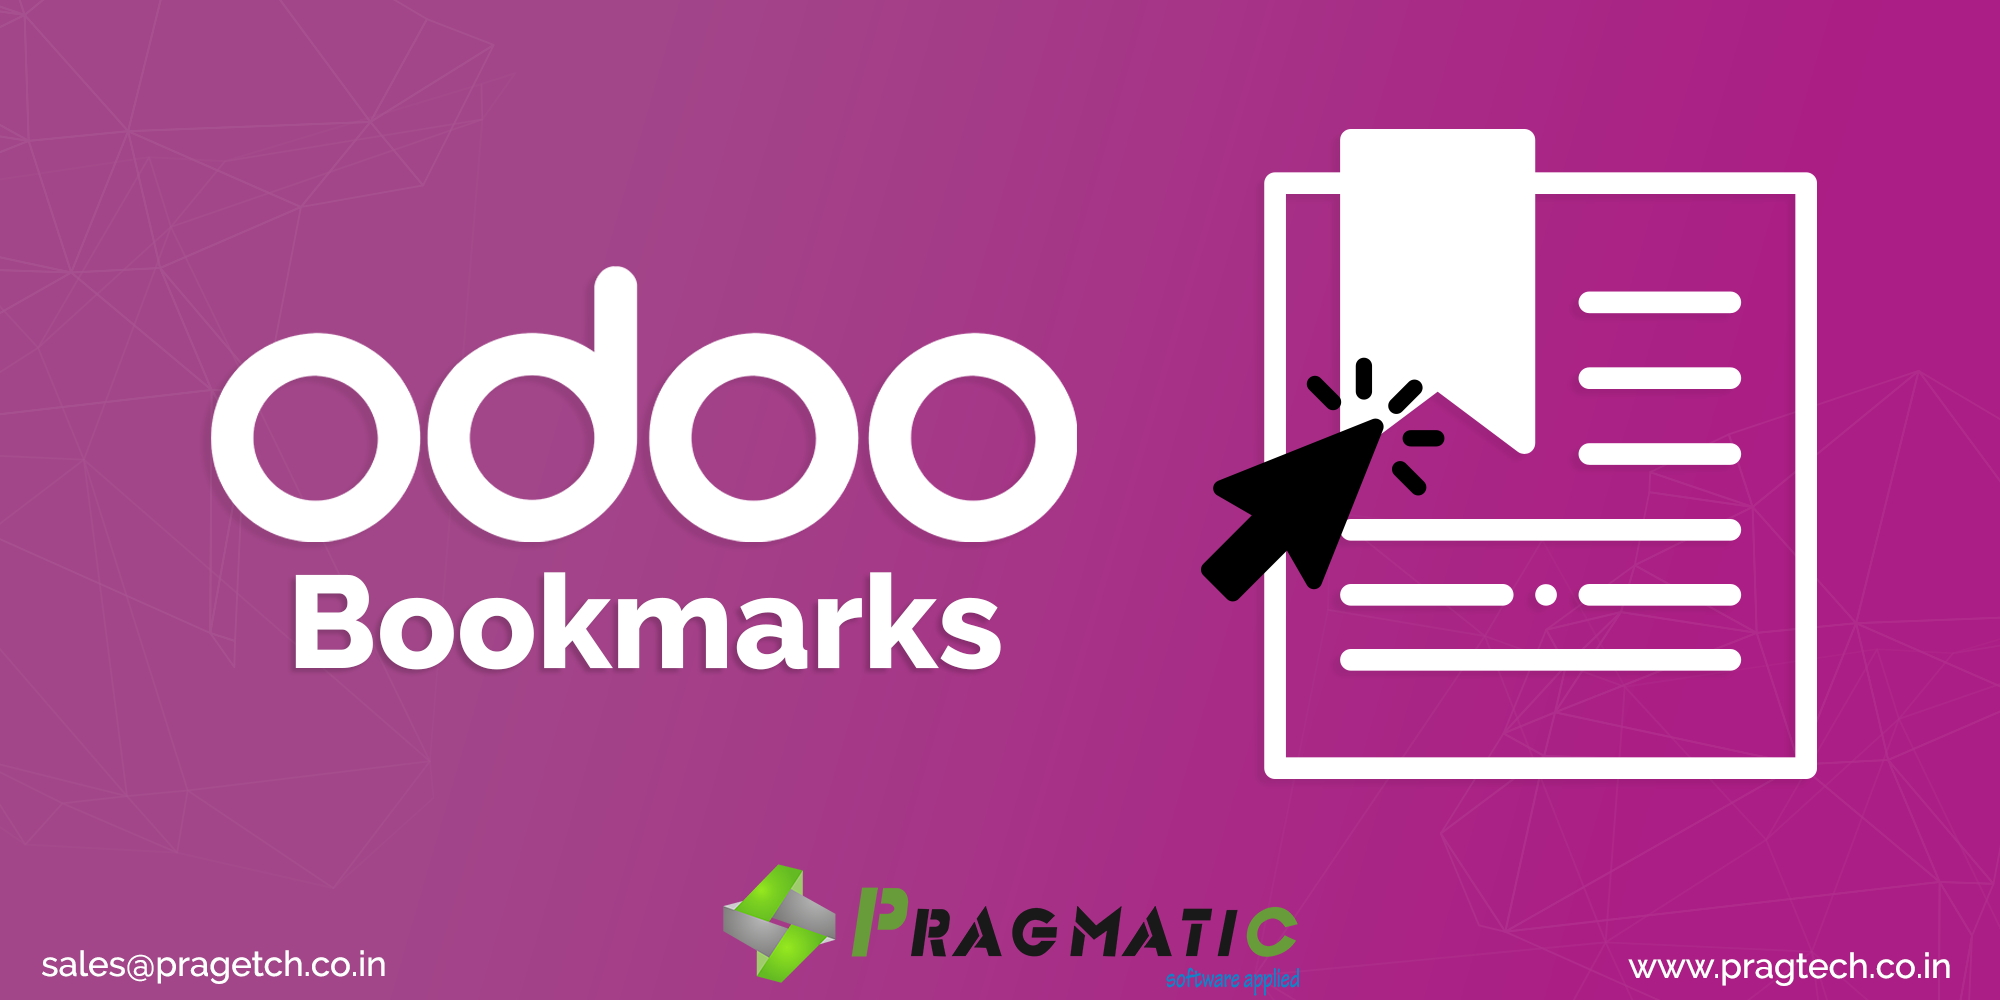 Odoo Bookmarks